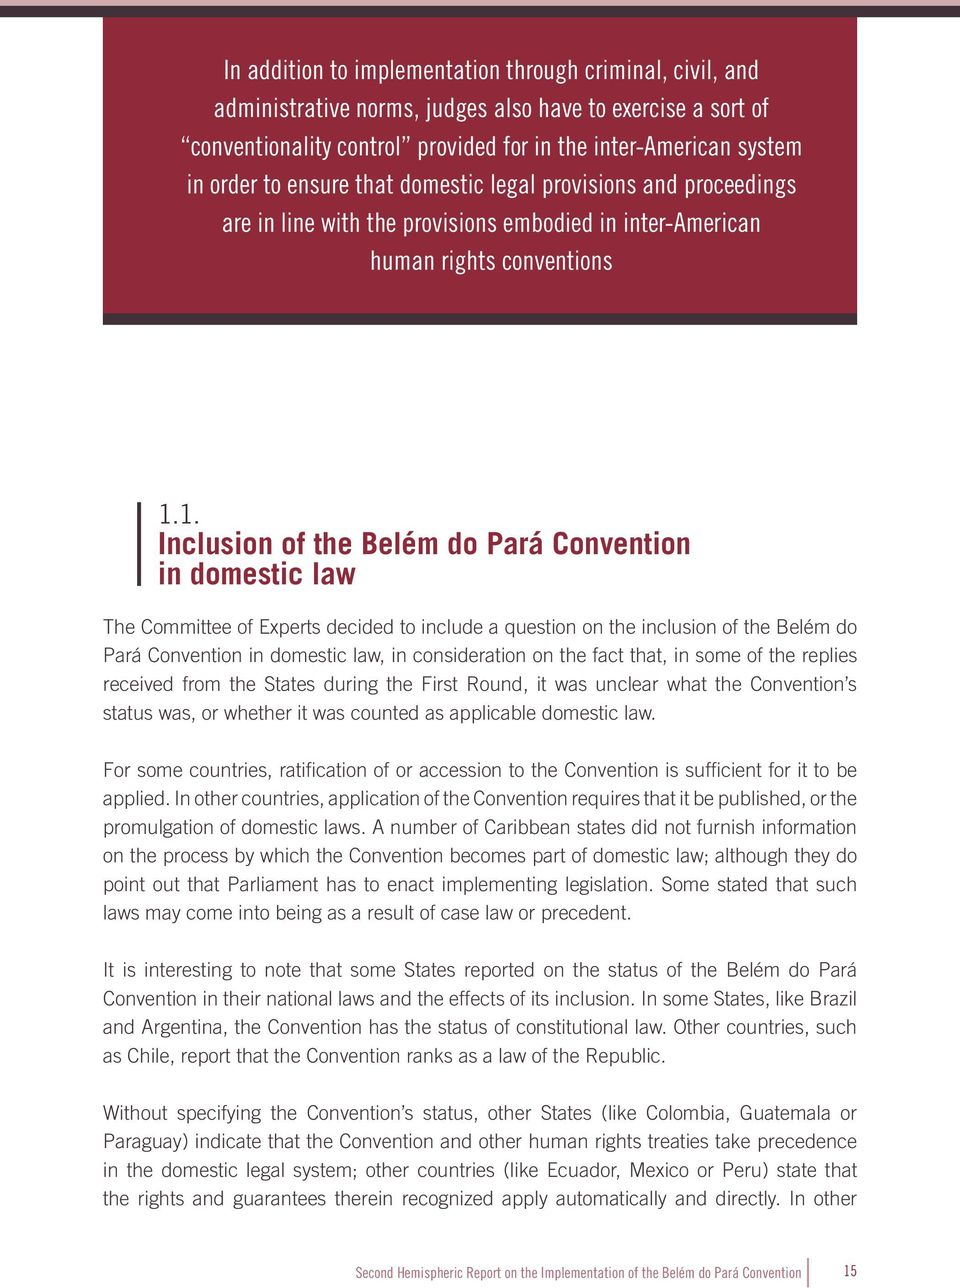 1. Inclusion of the Belém do Pará Convention in domestic law The Committee of Experts decided to include a question on the inclusion of the Belém do Pará Convention in domestic law, in consideration